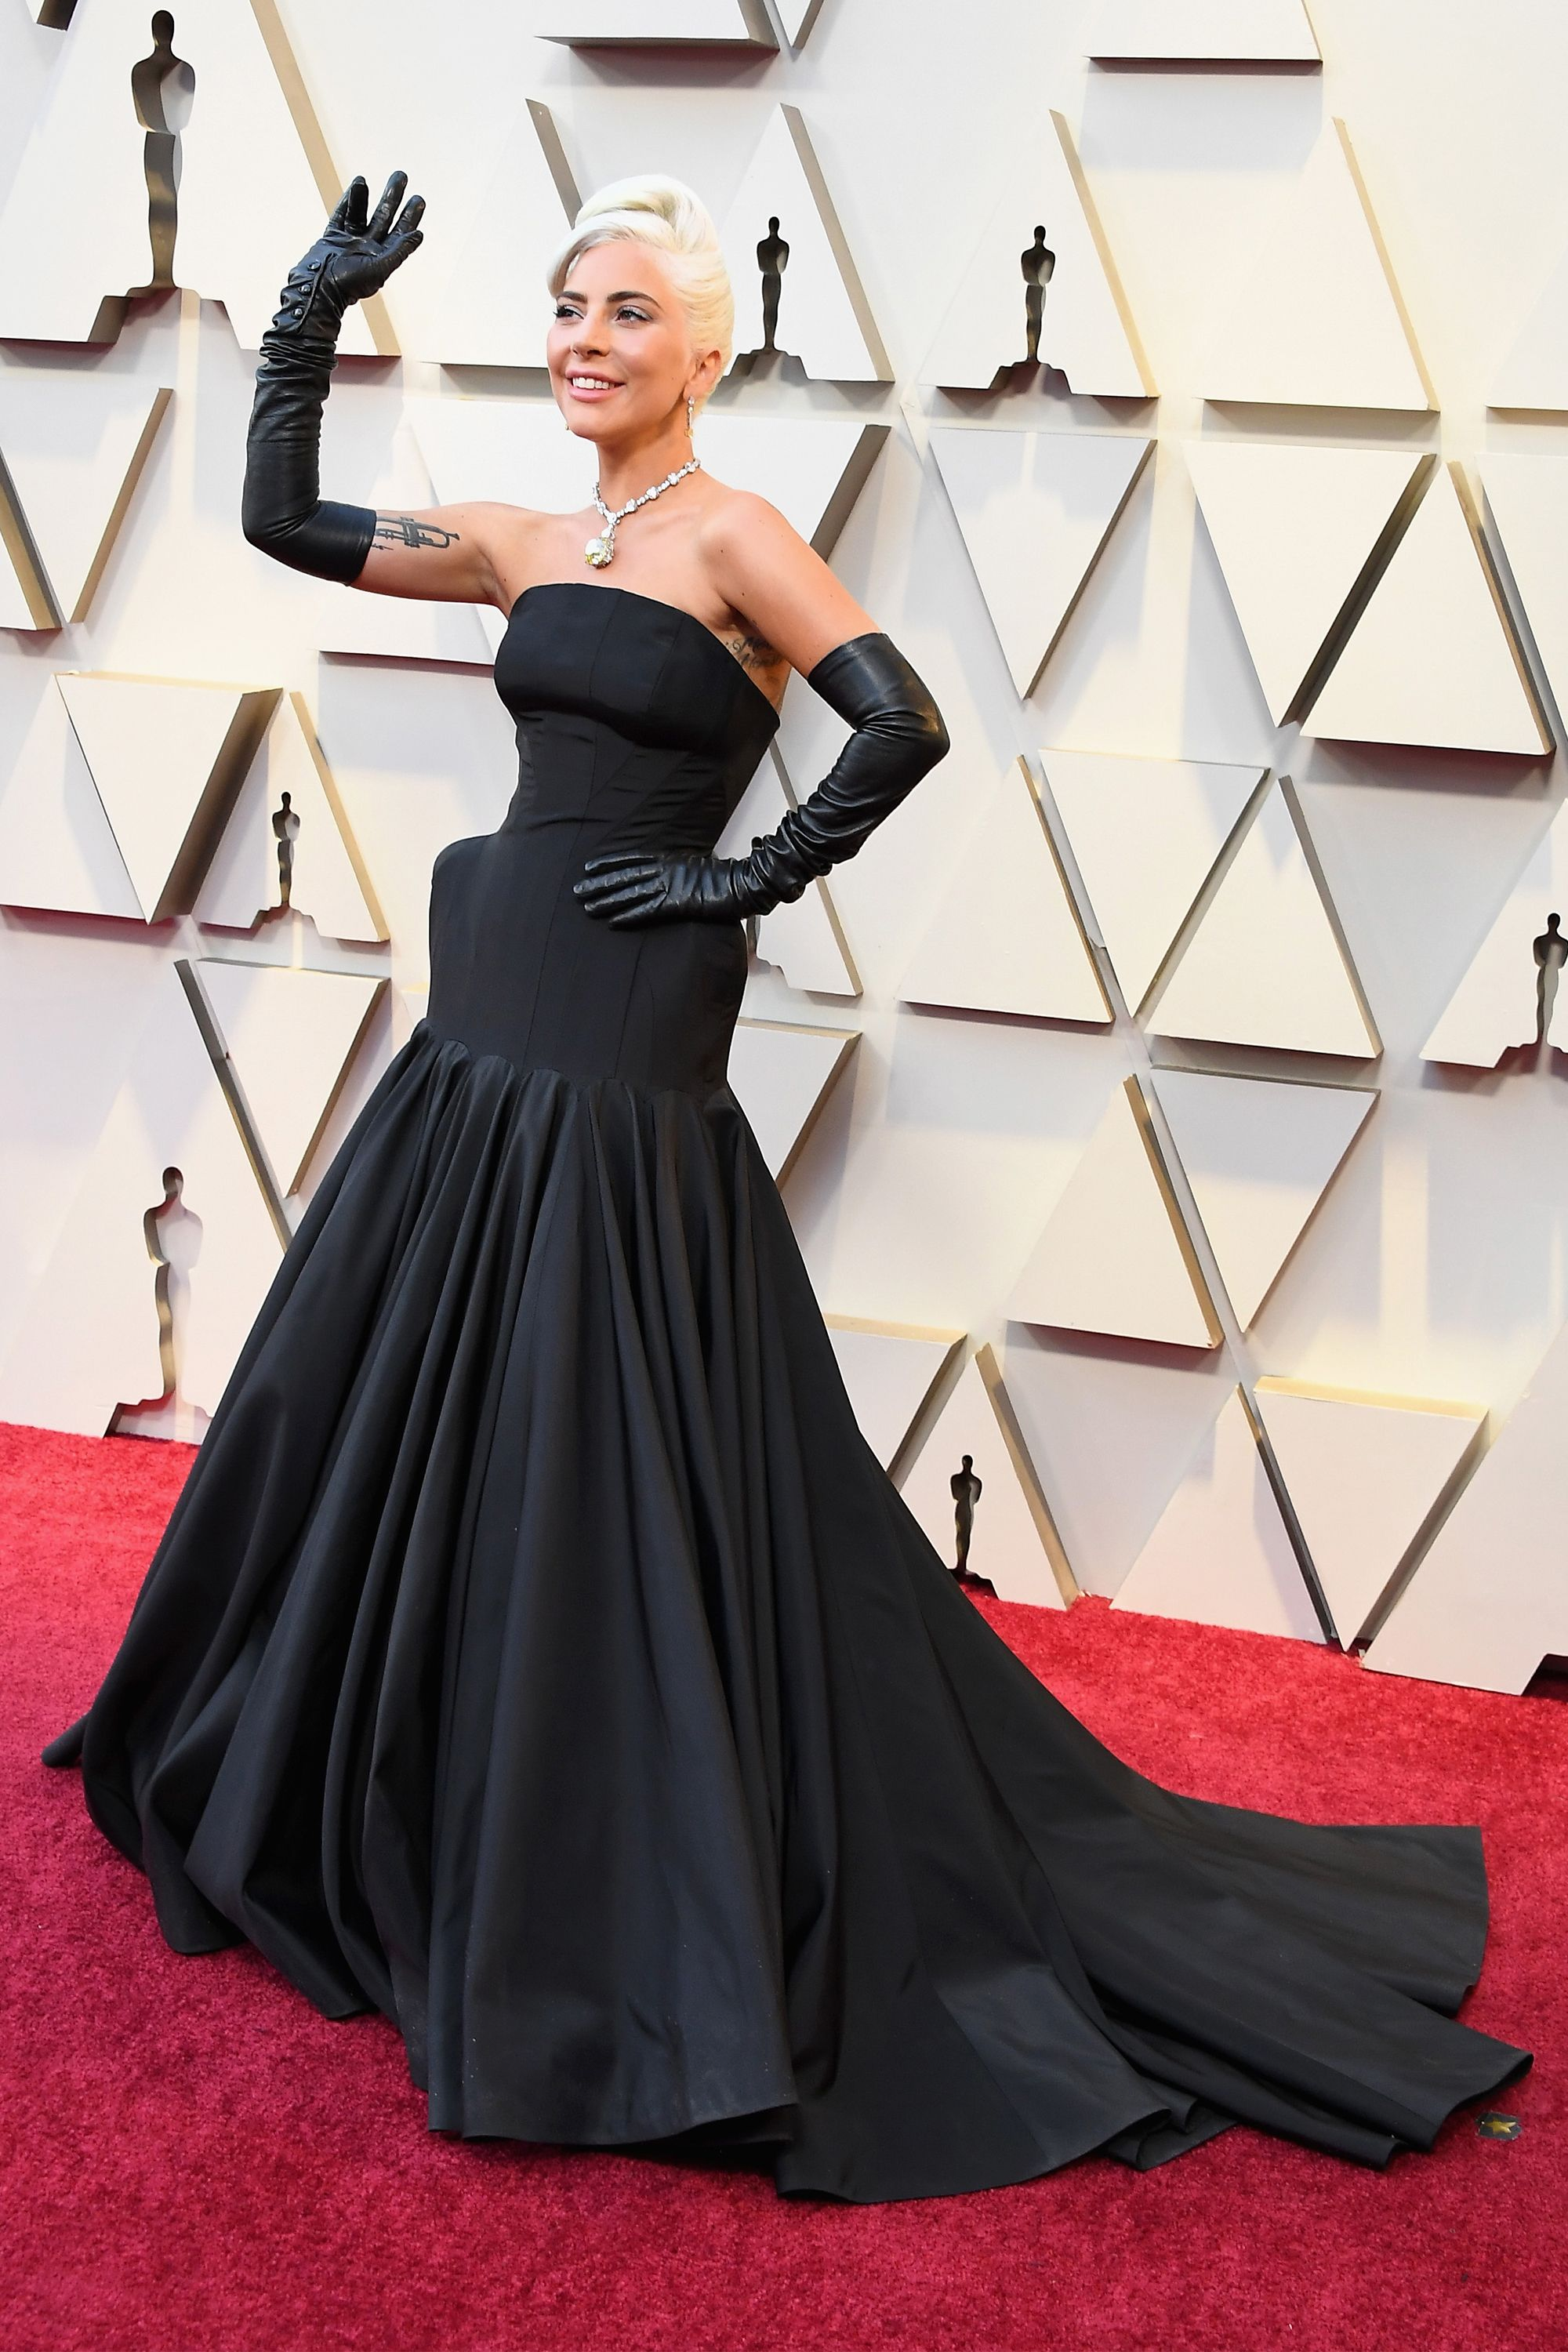 2095295d26a6 Lady Gaga s Best Style Moments - Lady Gaga Outfits and Best Fashion Looks